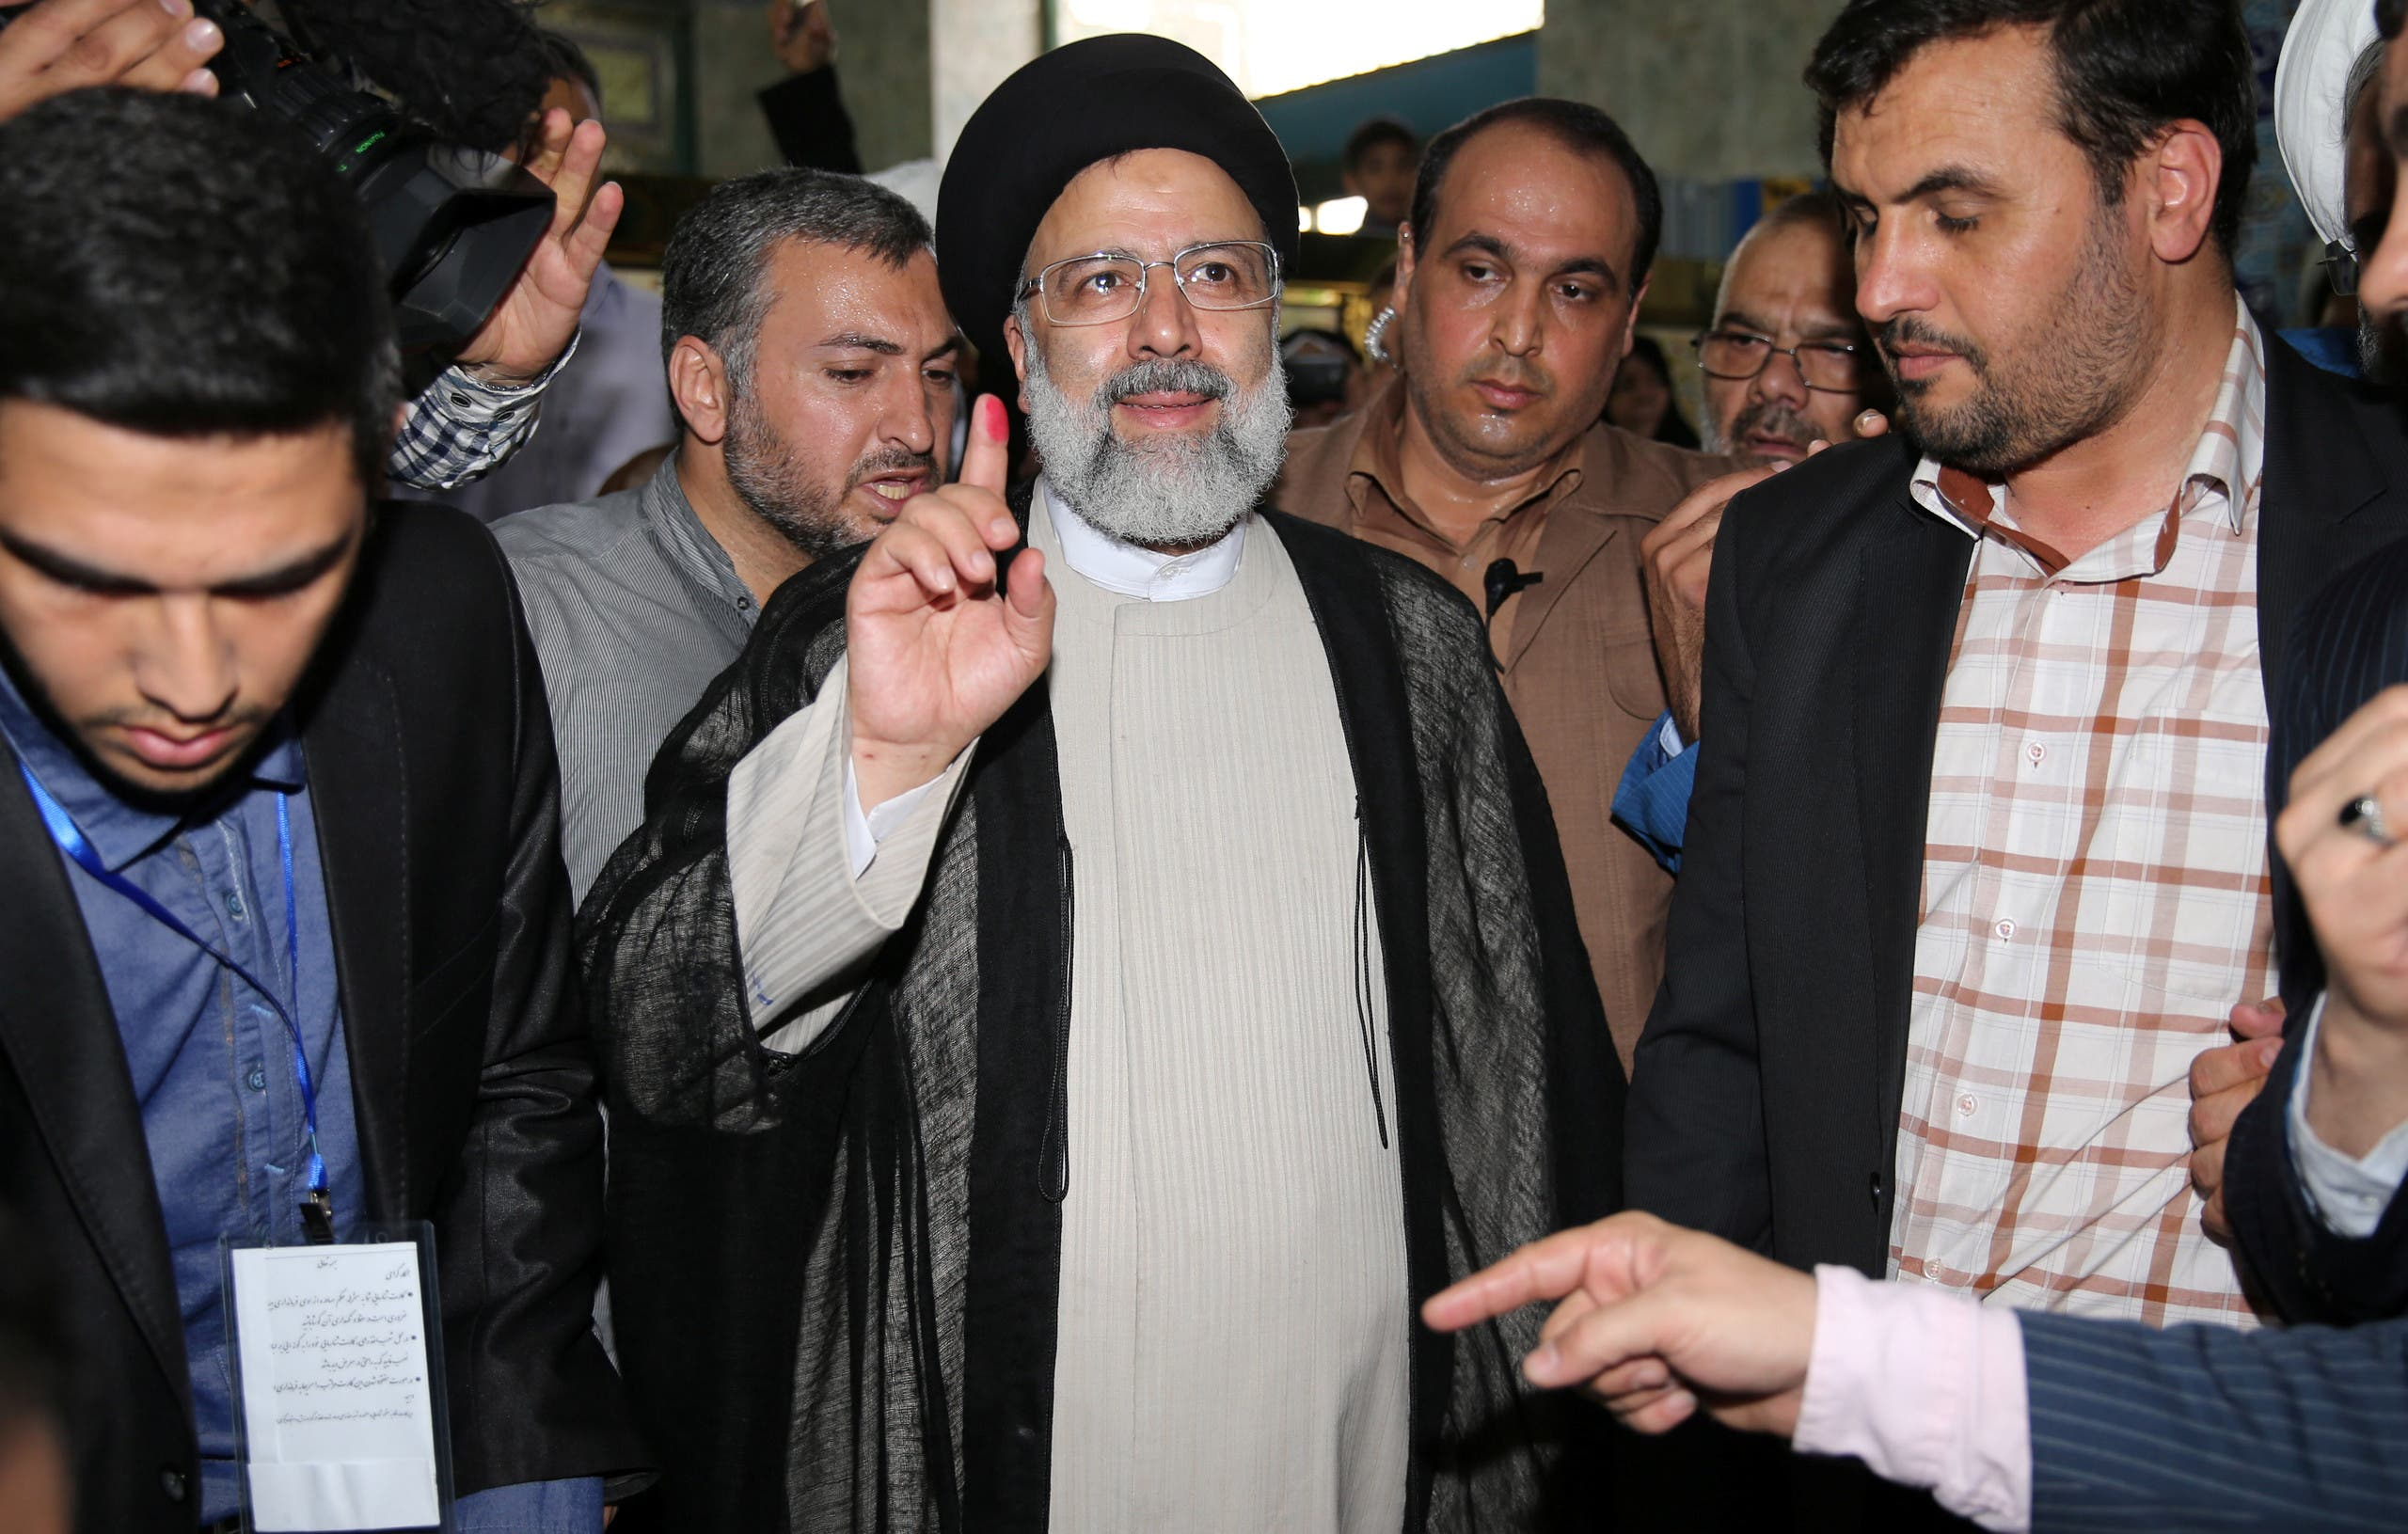 Iranian presidential candidate Ebrahim Raisi shows his ink-stained finger after casting his ballot during the presidential election in Tehran, Iran, May 19, 2017. (Reuters)